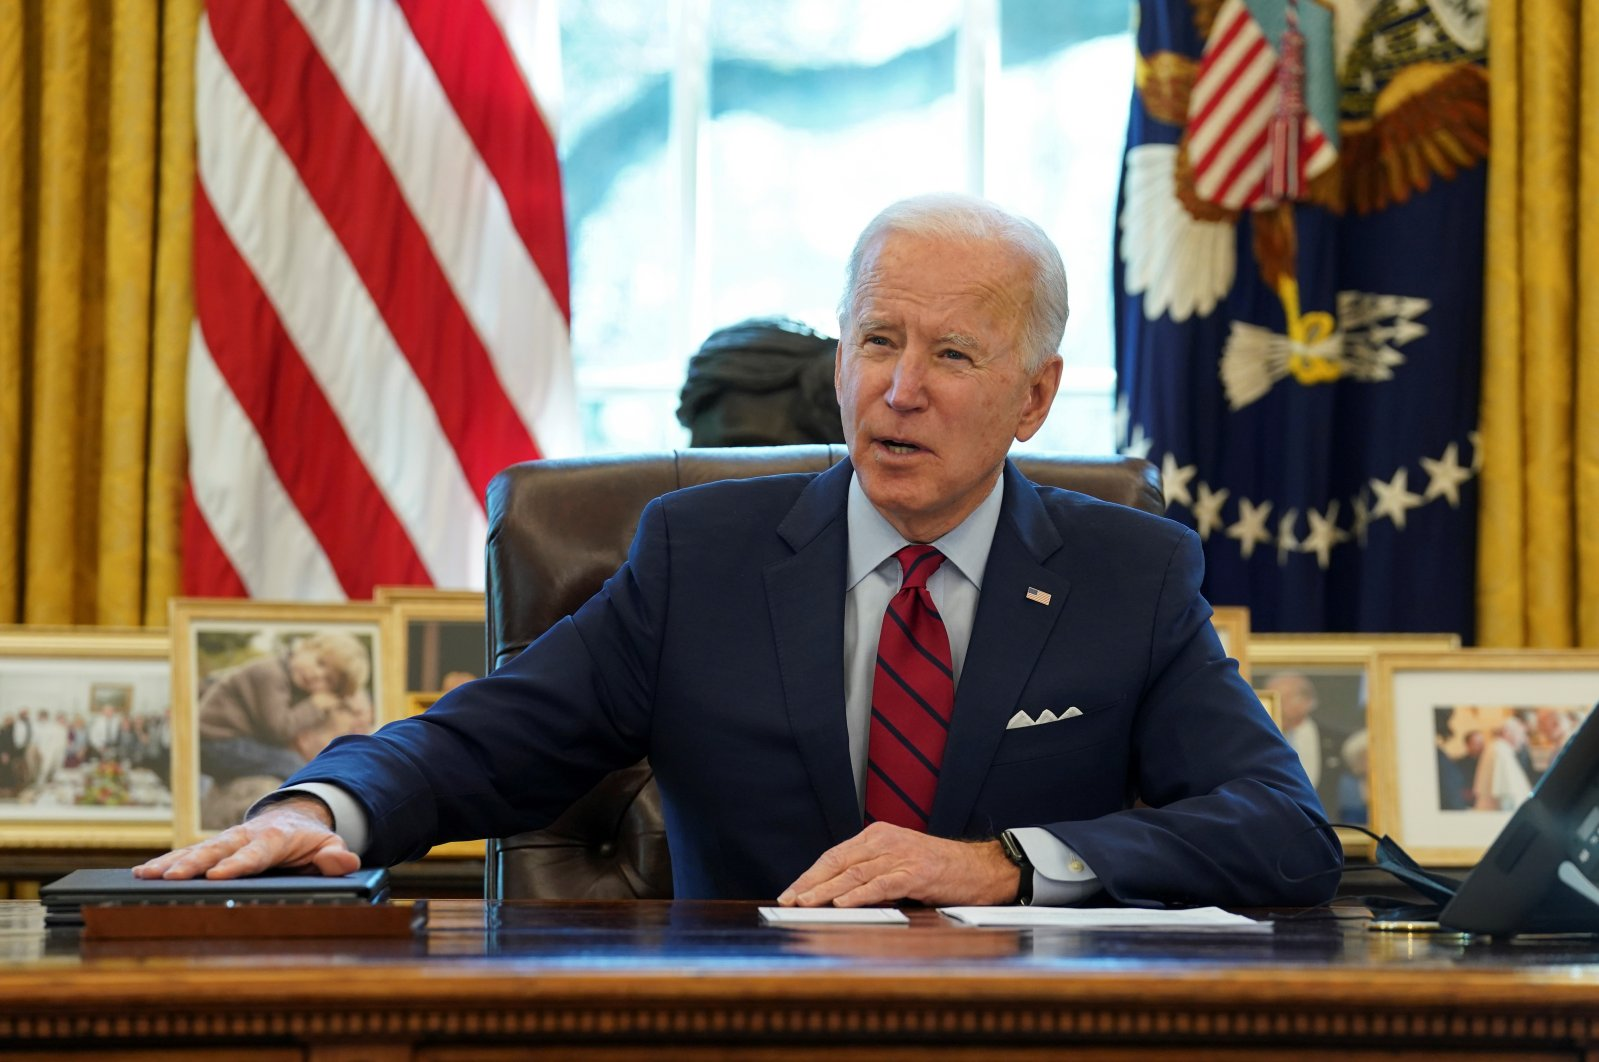 U.S. President Joe Biden speaks before signing executive orders strengthening access to affordable health care at the White House in Washington, U.S., Jan. 28, 2021. (Reuters Photo)